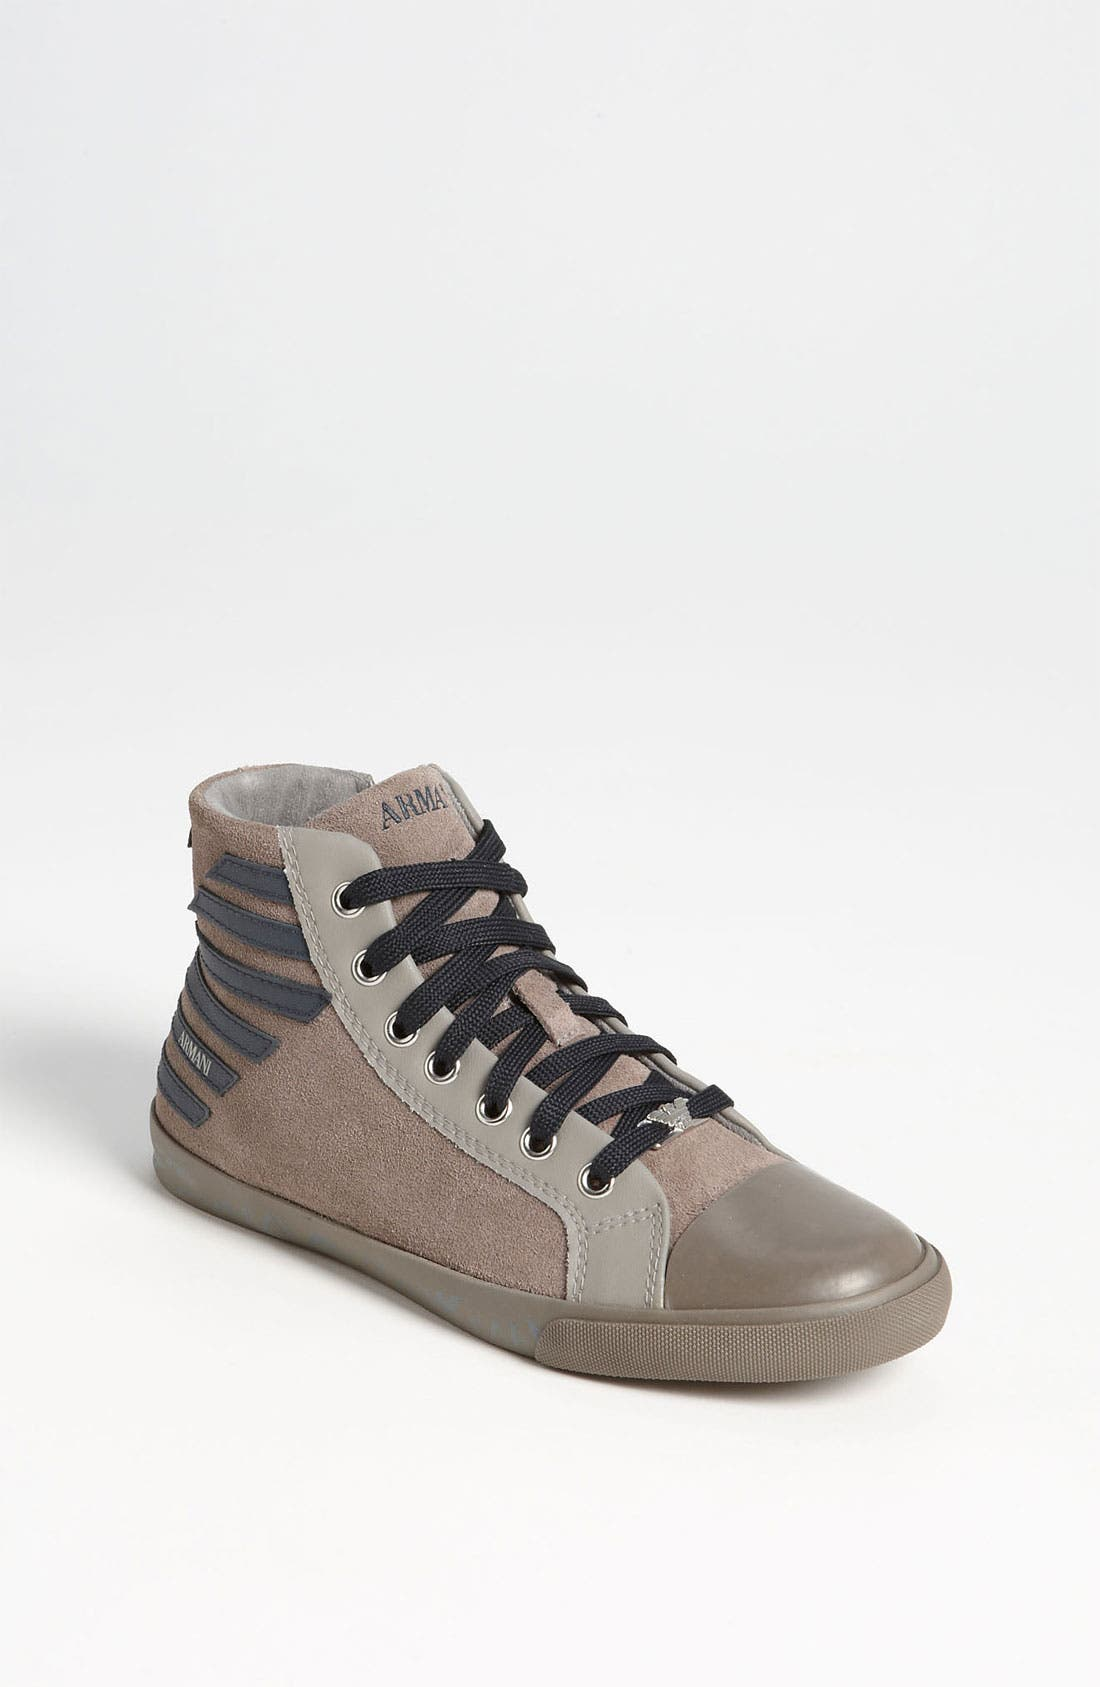 Alternate Image 1 Selected - Armani Junior 'Eagle' Sneaker (Toddler, Little Kid & Big Kid)